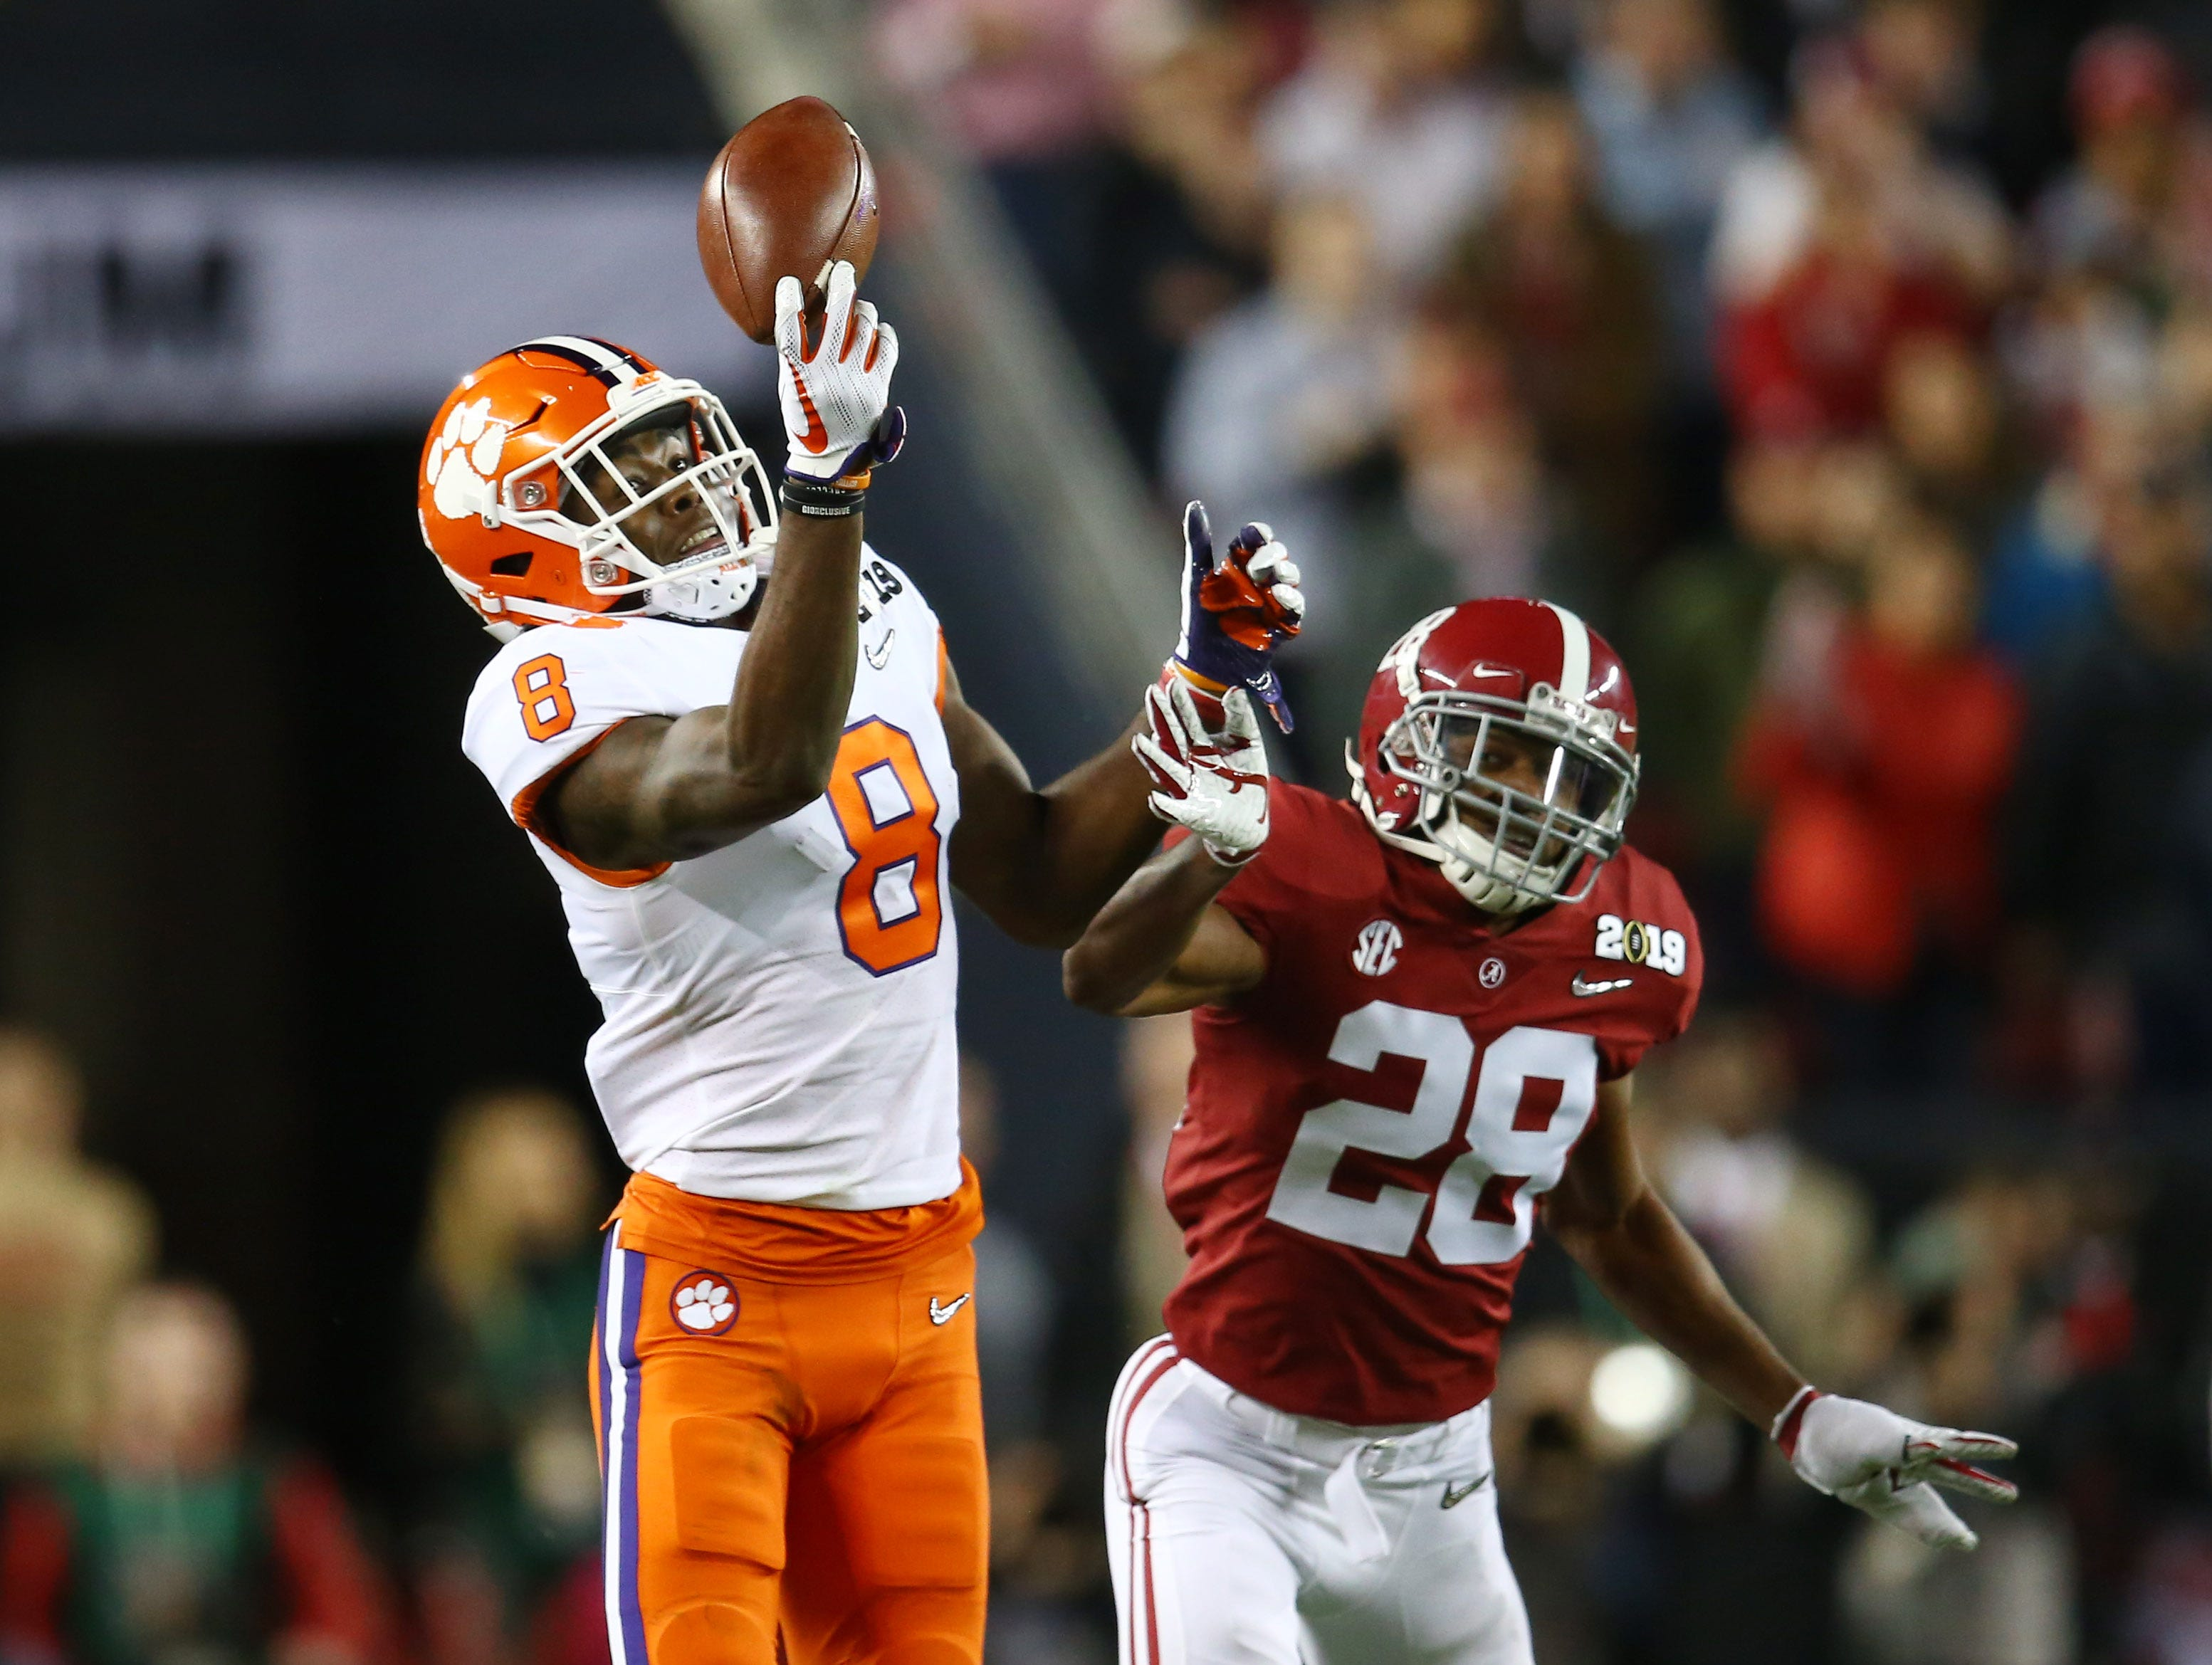 Jan 7, 2019; Santa Clara, CA, USA; Clemson Tigers wide receiver Justyn Ross (8) catches a pass against Alabama Crimson Tide defensive back Josh Jobe (28) in the third quarter during the 2019 College Football Playoff Championship game at Levi's Stadium. Mandatory Credit: Mark Rebilas-USA TODAY Sports